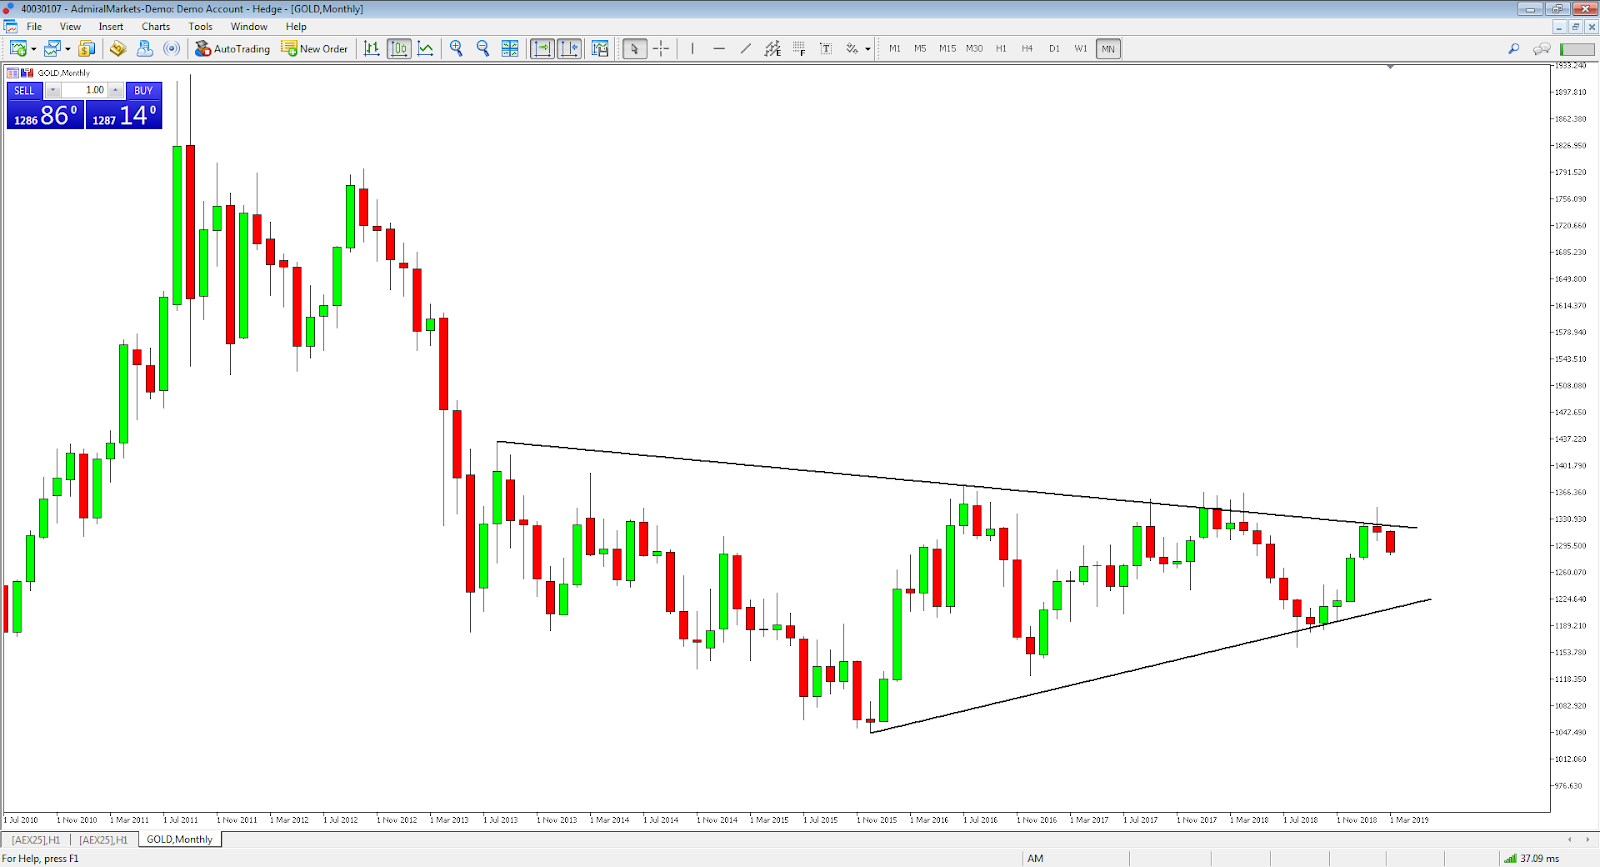 Gold Index monthly chart